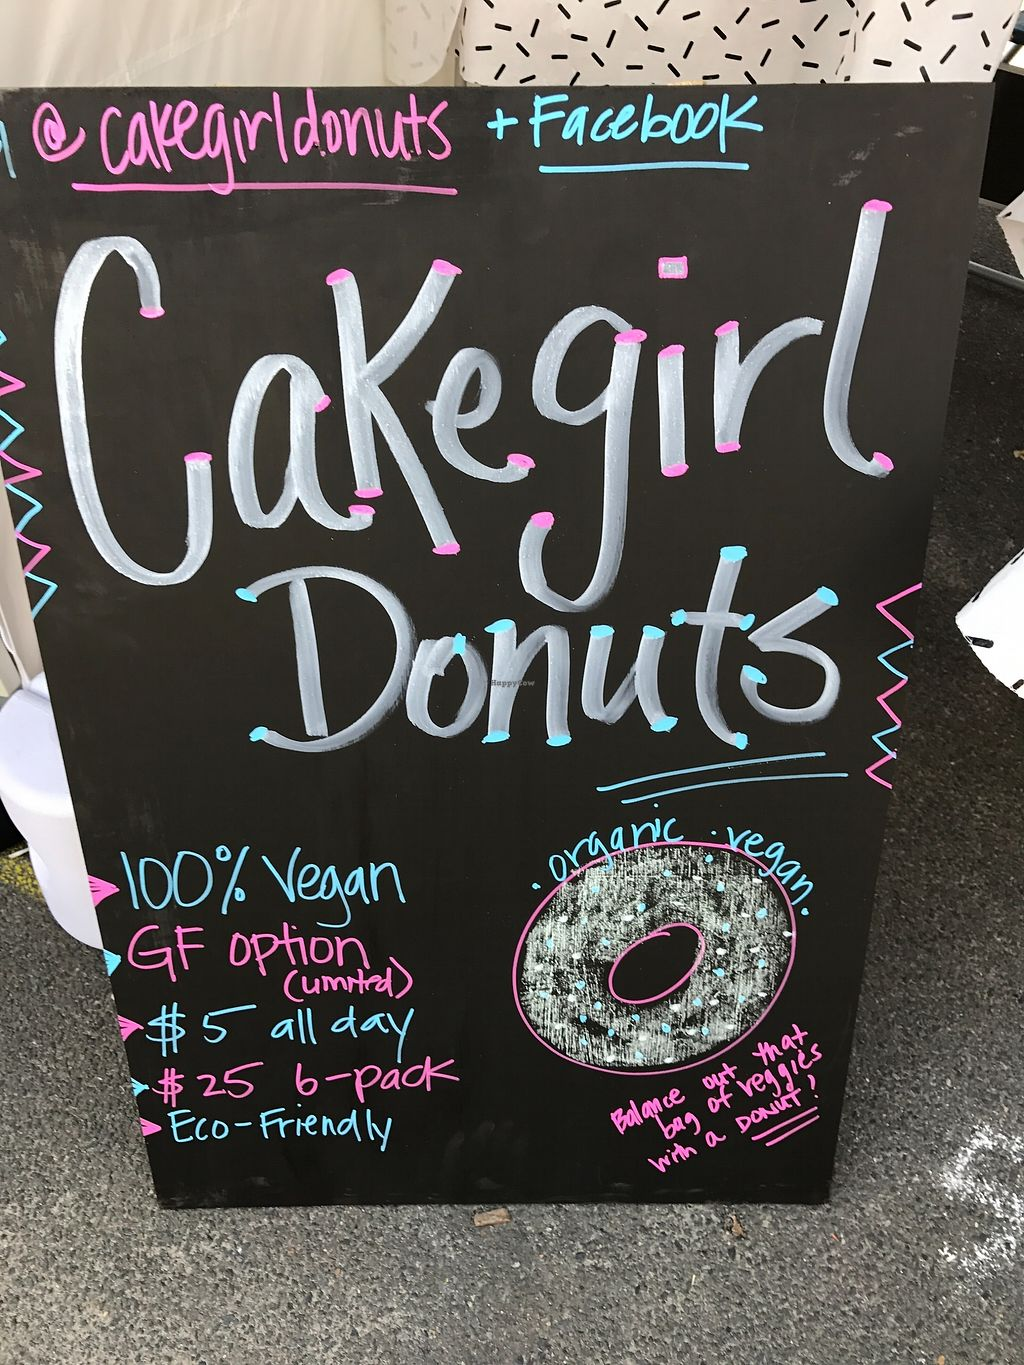 """Photo of Cakegirl Donuts  by <a href=""""/members/profile/AmandaAttard"""">AmandaAttard</a> <br/>CakeGirl Donuts at the markets <br/> September 10, 2017  - <a href='/contact/abuse/image/100112/303094'>Report</a>"""